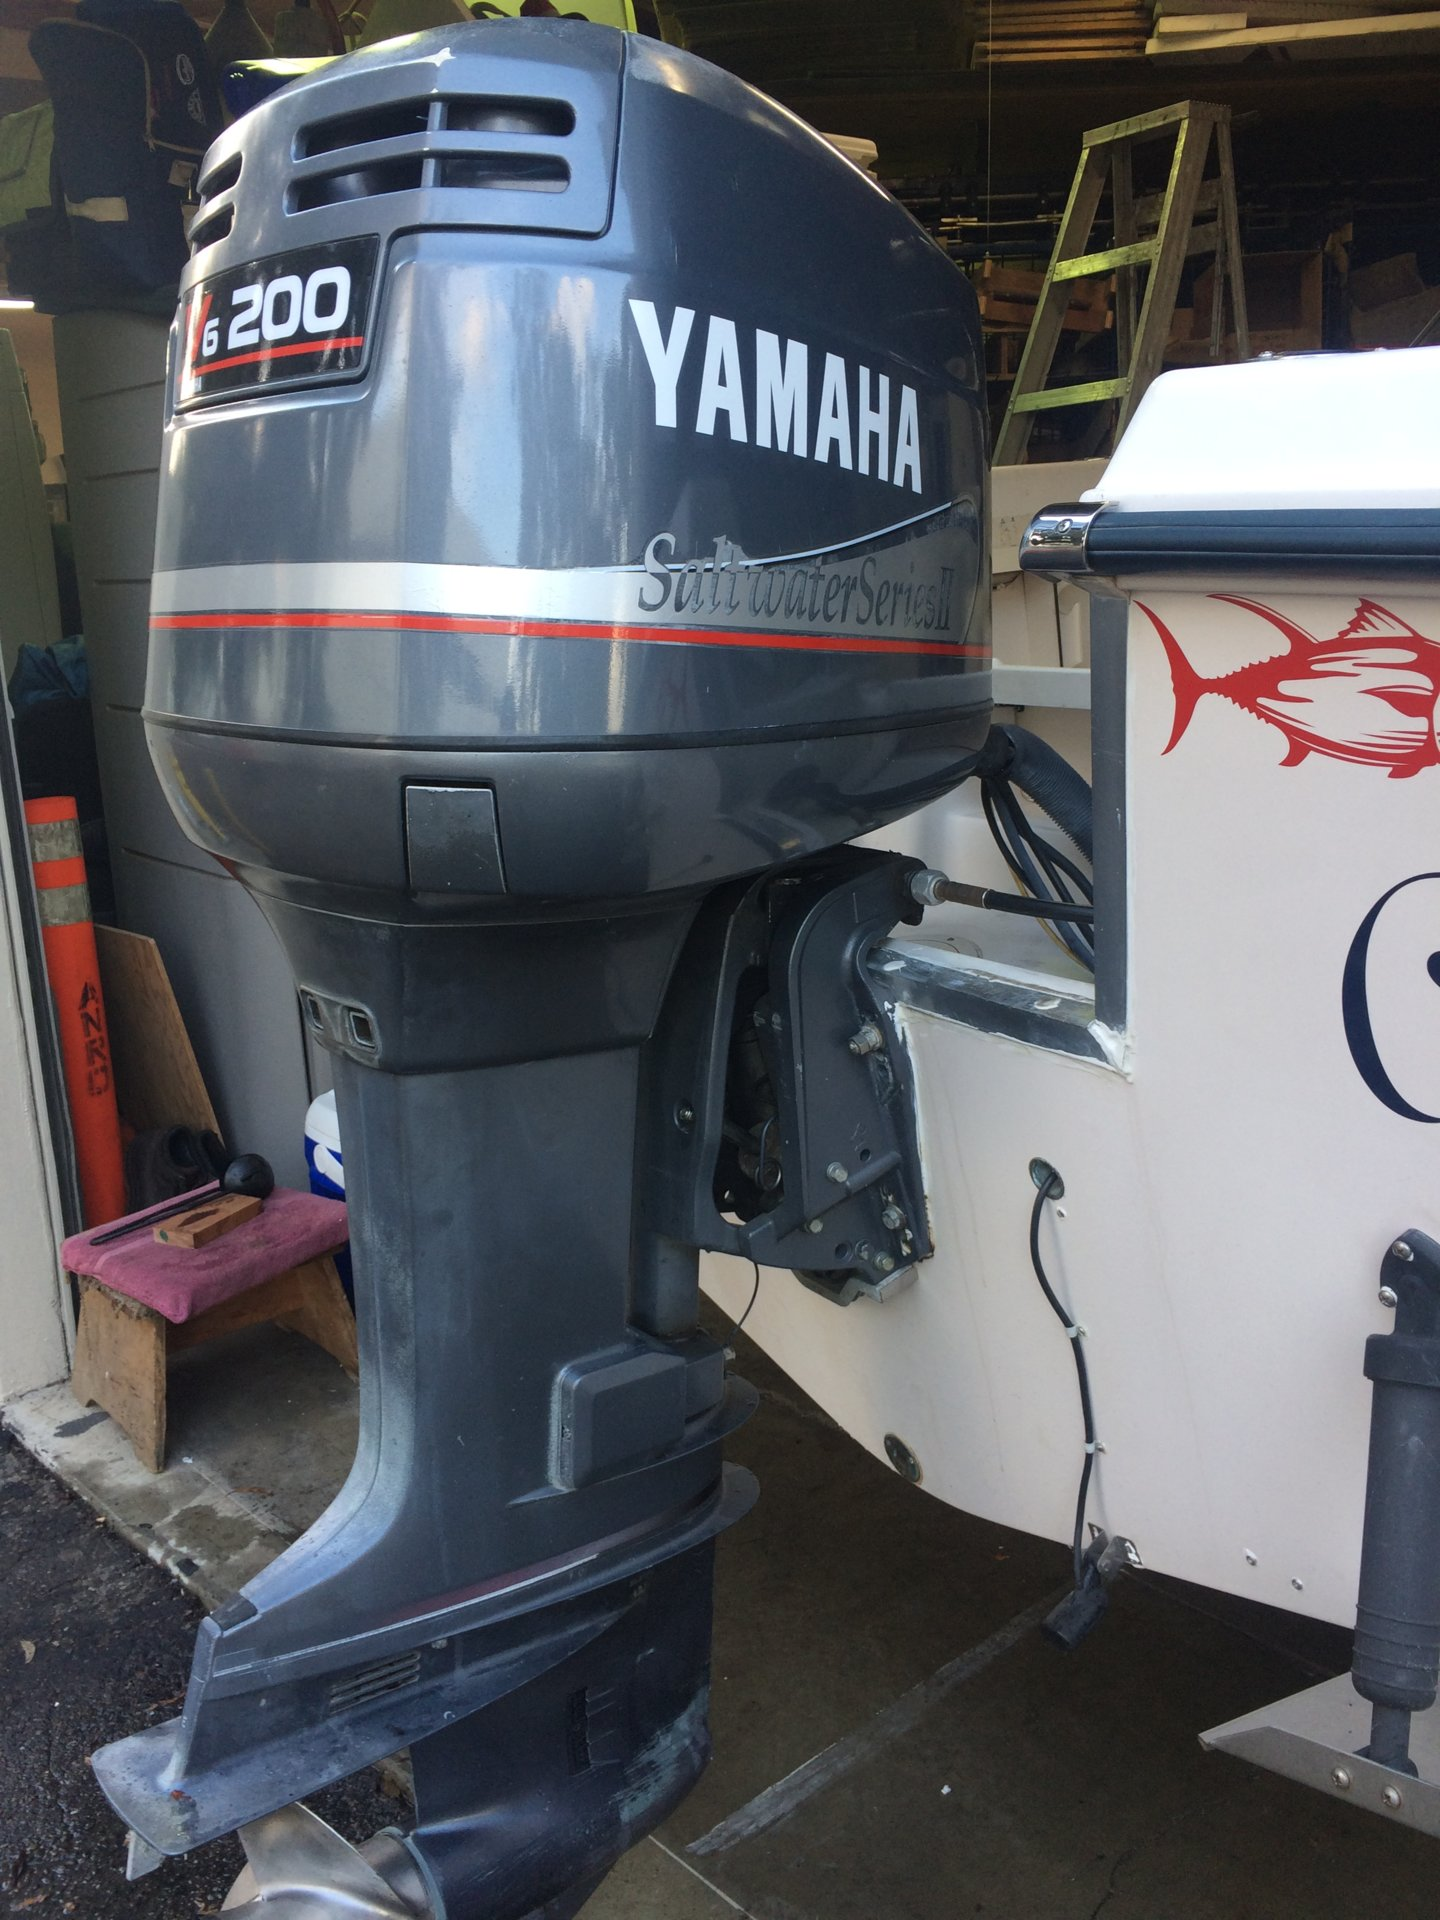 Yamaha 200 hp outboard price motorcycle image ideas for Used 200 hp mercury outboard motors for sale